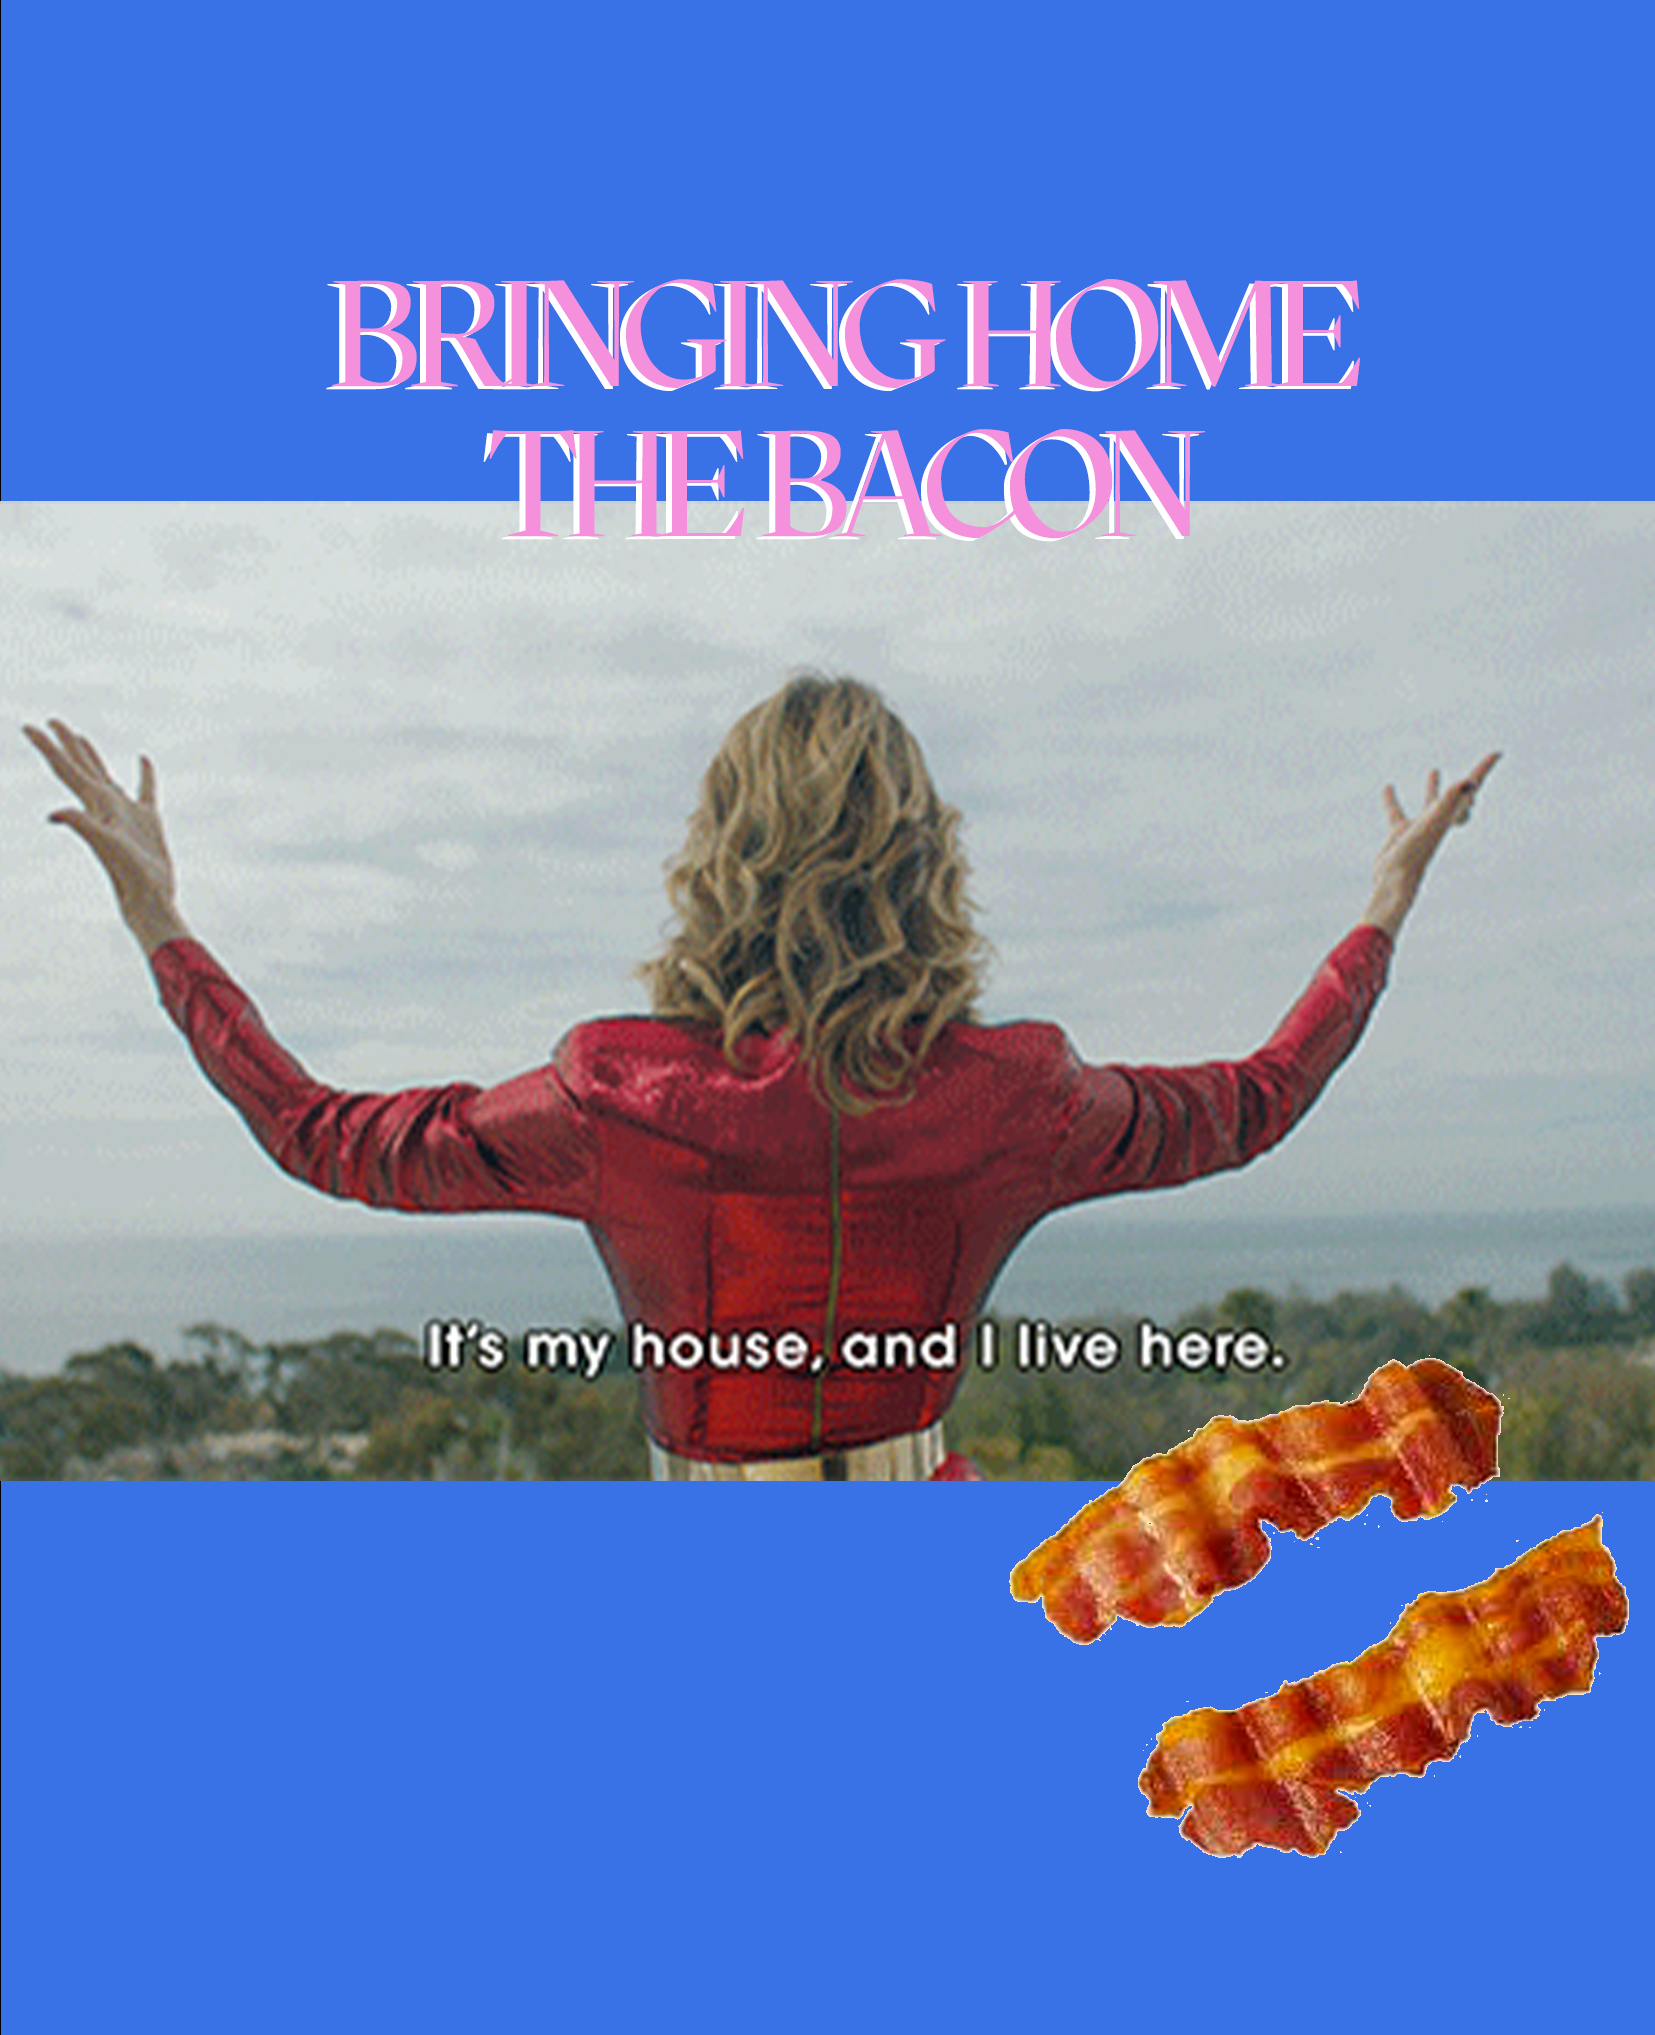 bacon MONTH - March Theme